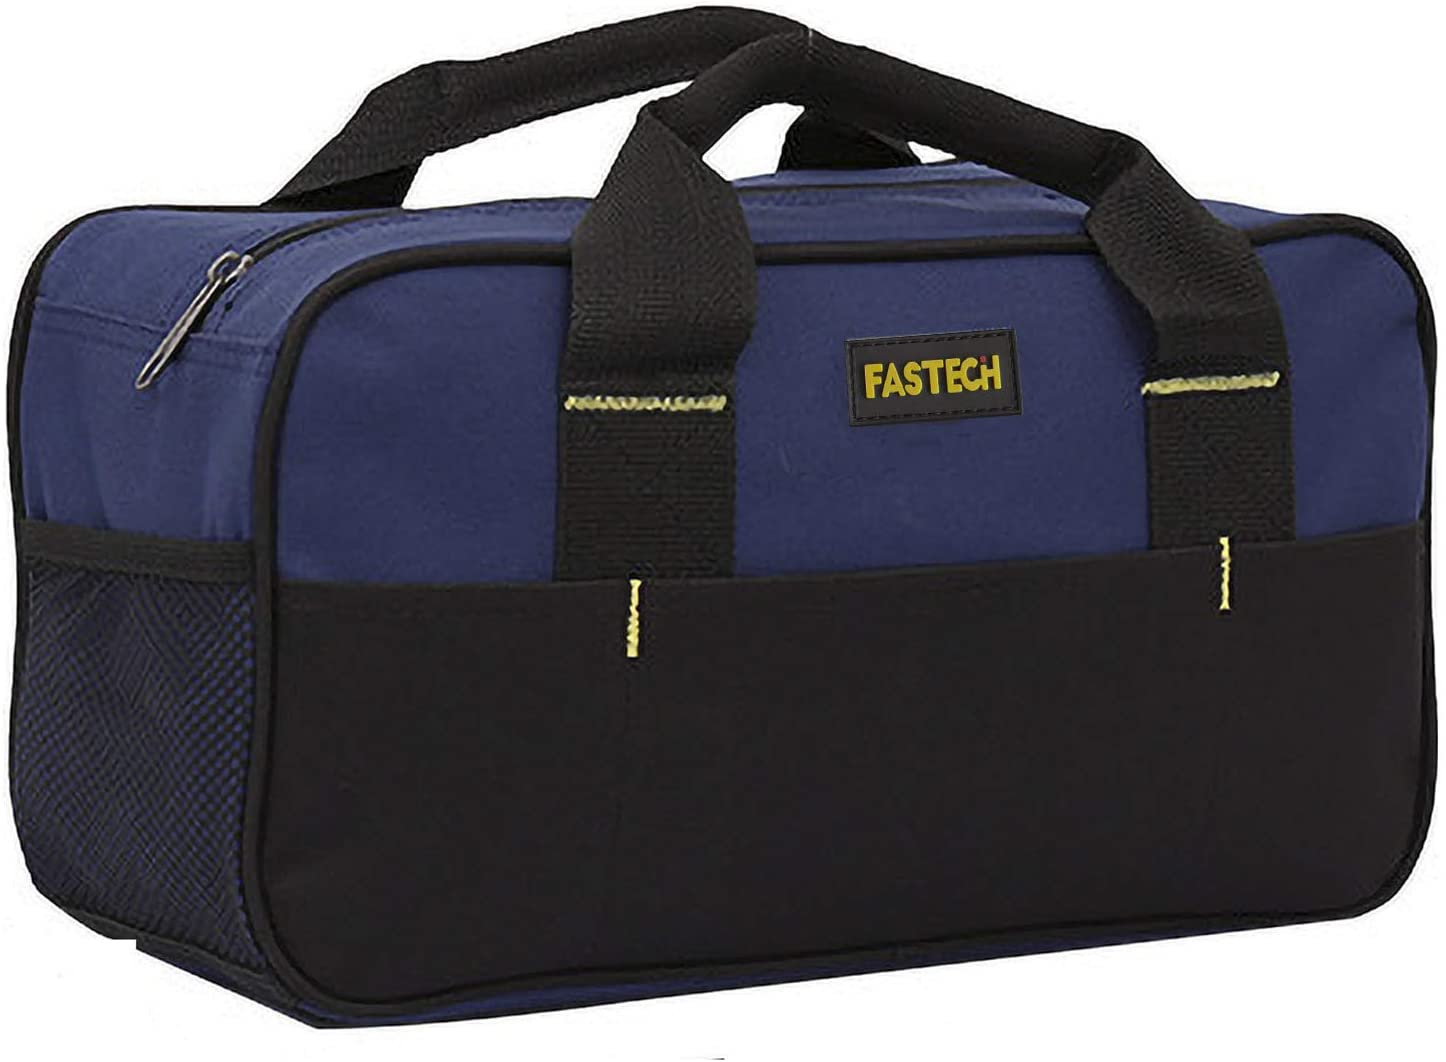 FASTECH 12 Inch Small New Shipping Free Shipping Tool Bag Mouth Waterpro Wide Max 44% OFF Tote